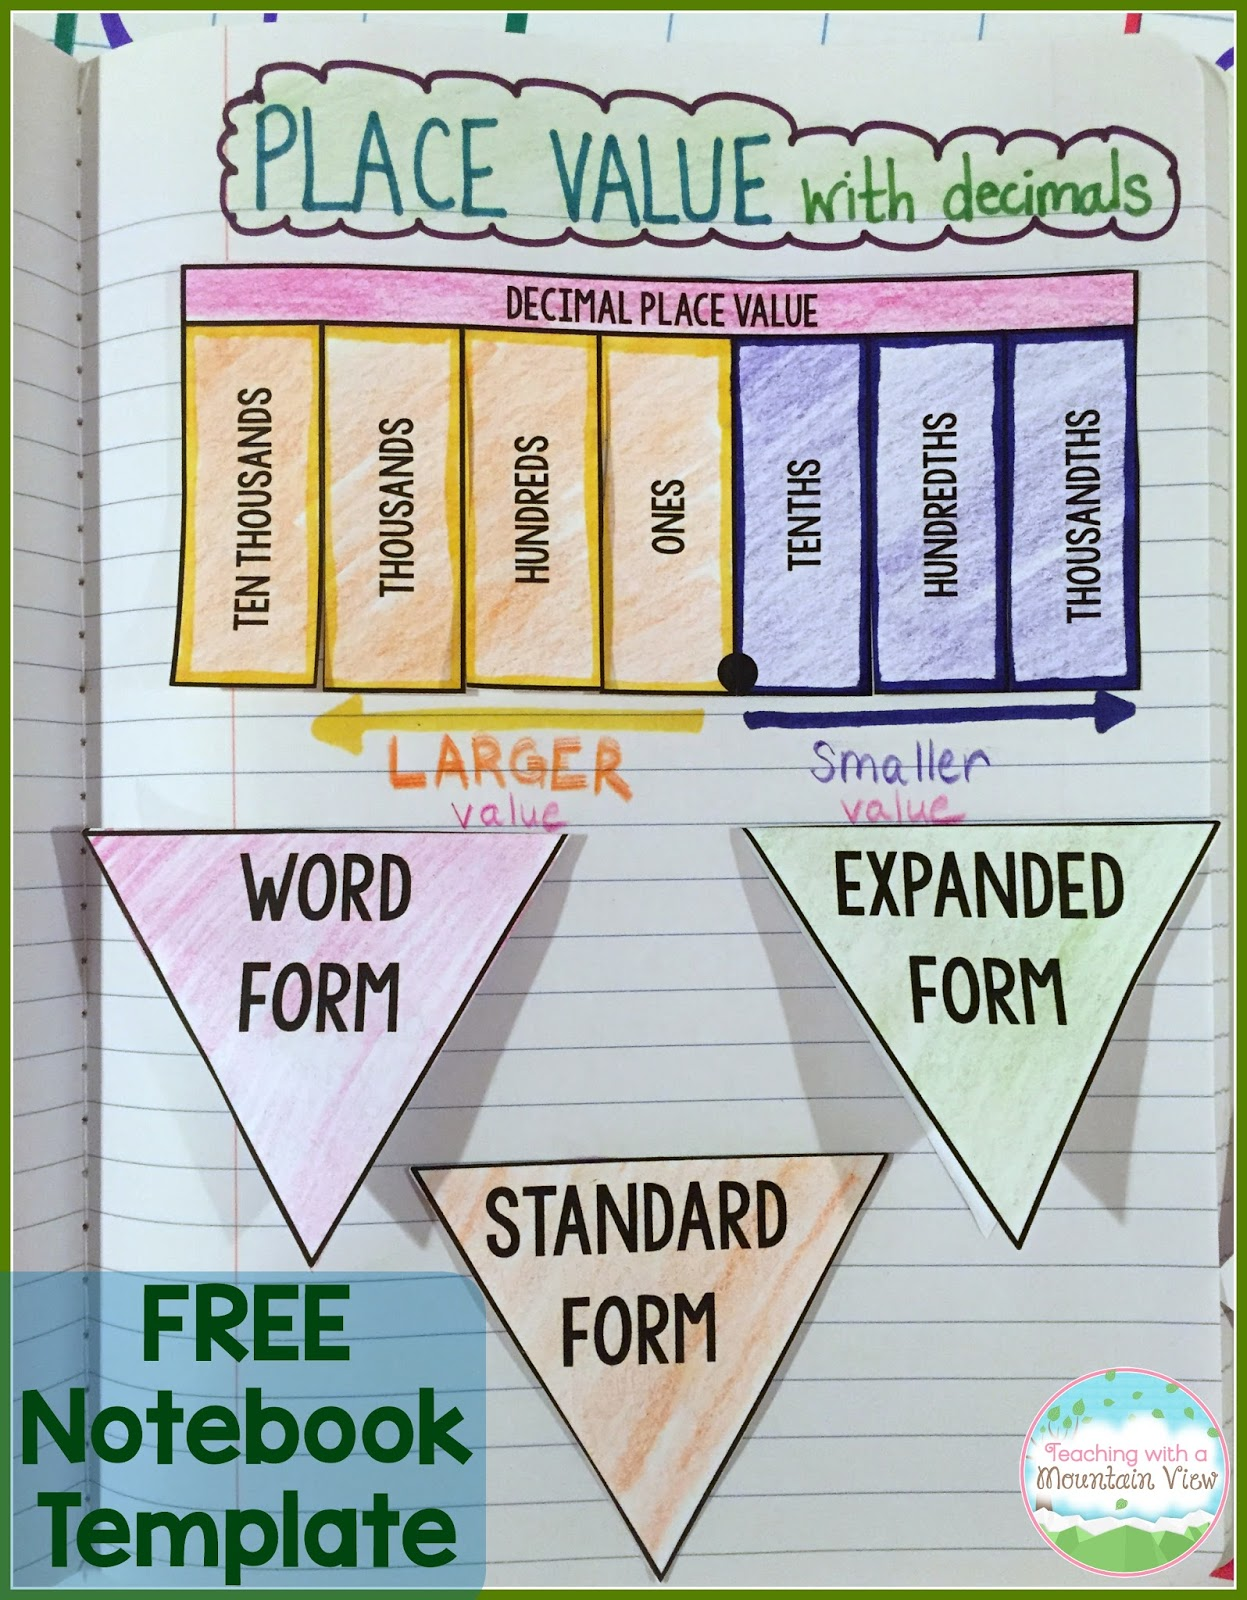 Suggested Online Resources For Place Value